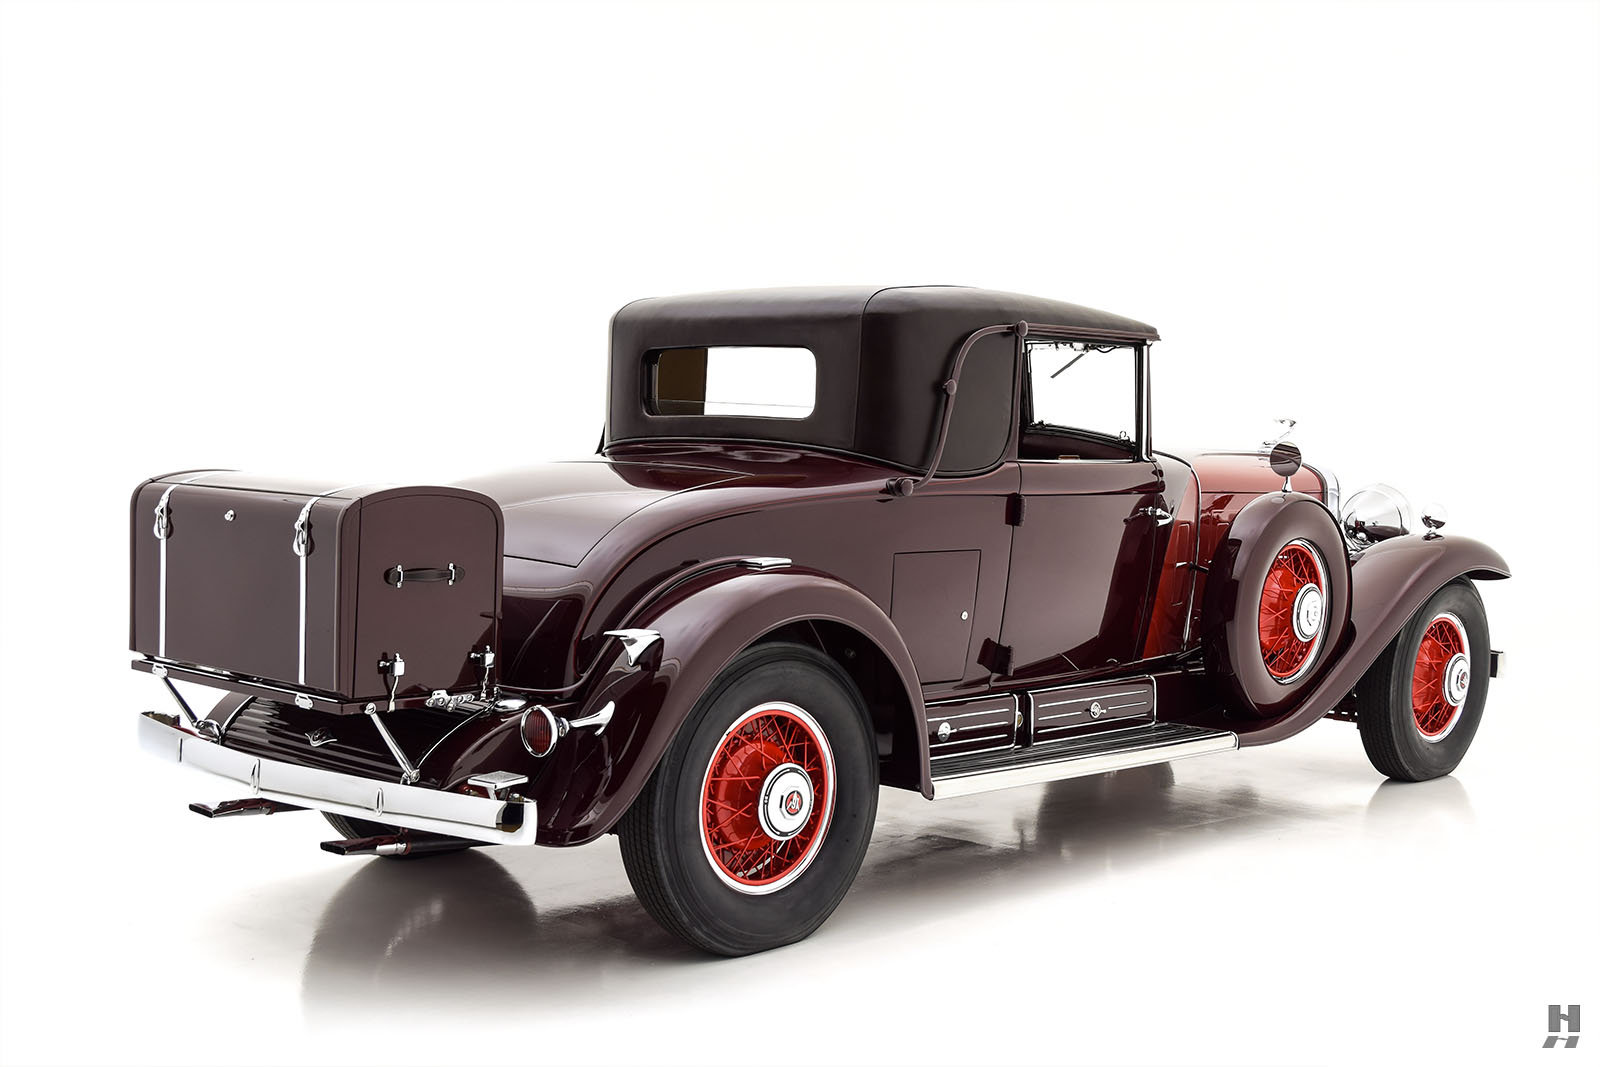 1930 CADILLAC SERIES 452 V-16 COUPE For Sale (picture 5 of 6)